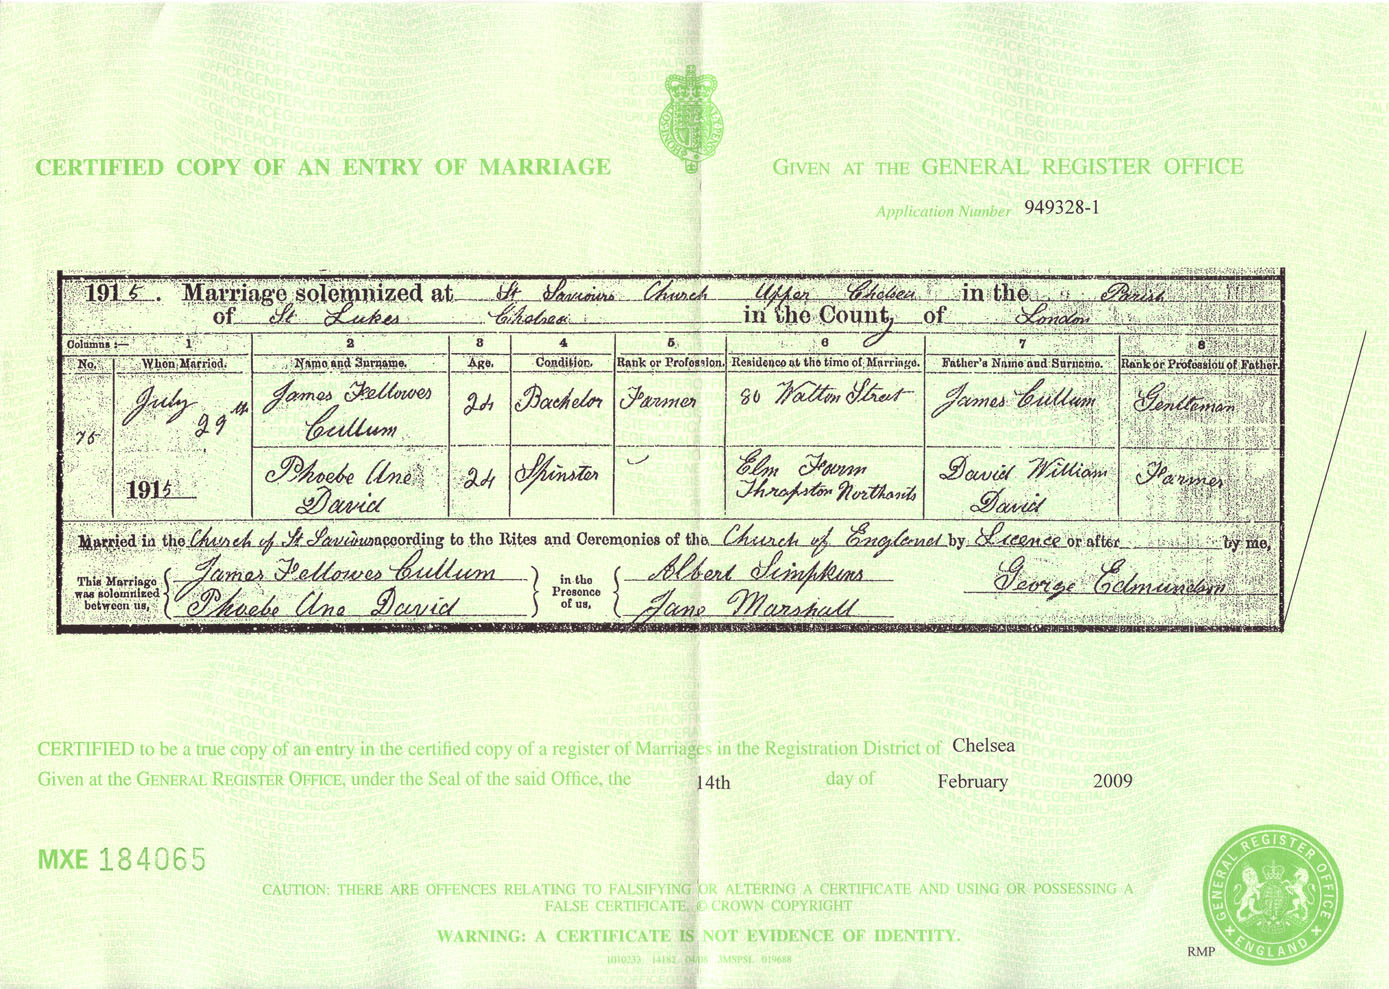 James & Phoebe Marriage Certificate